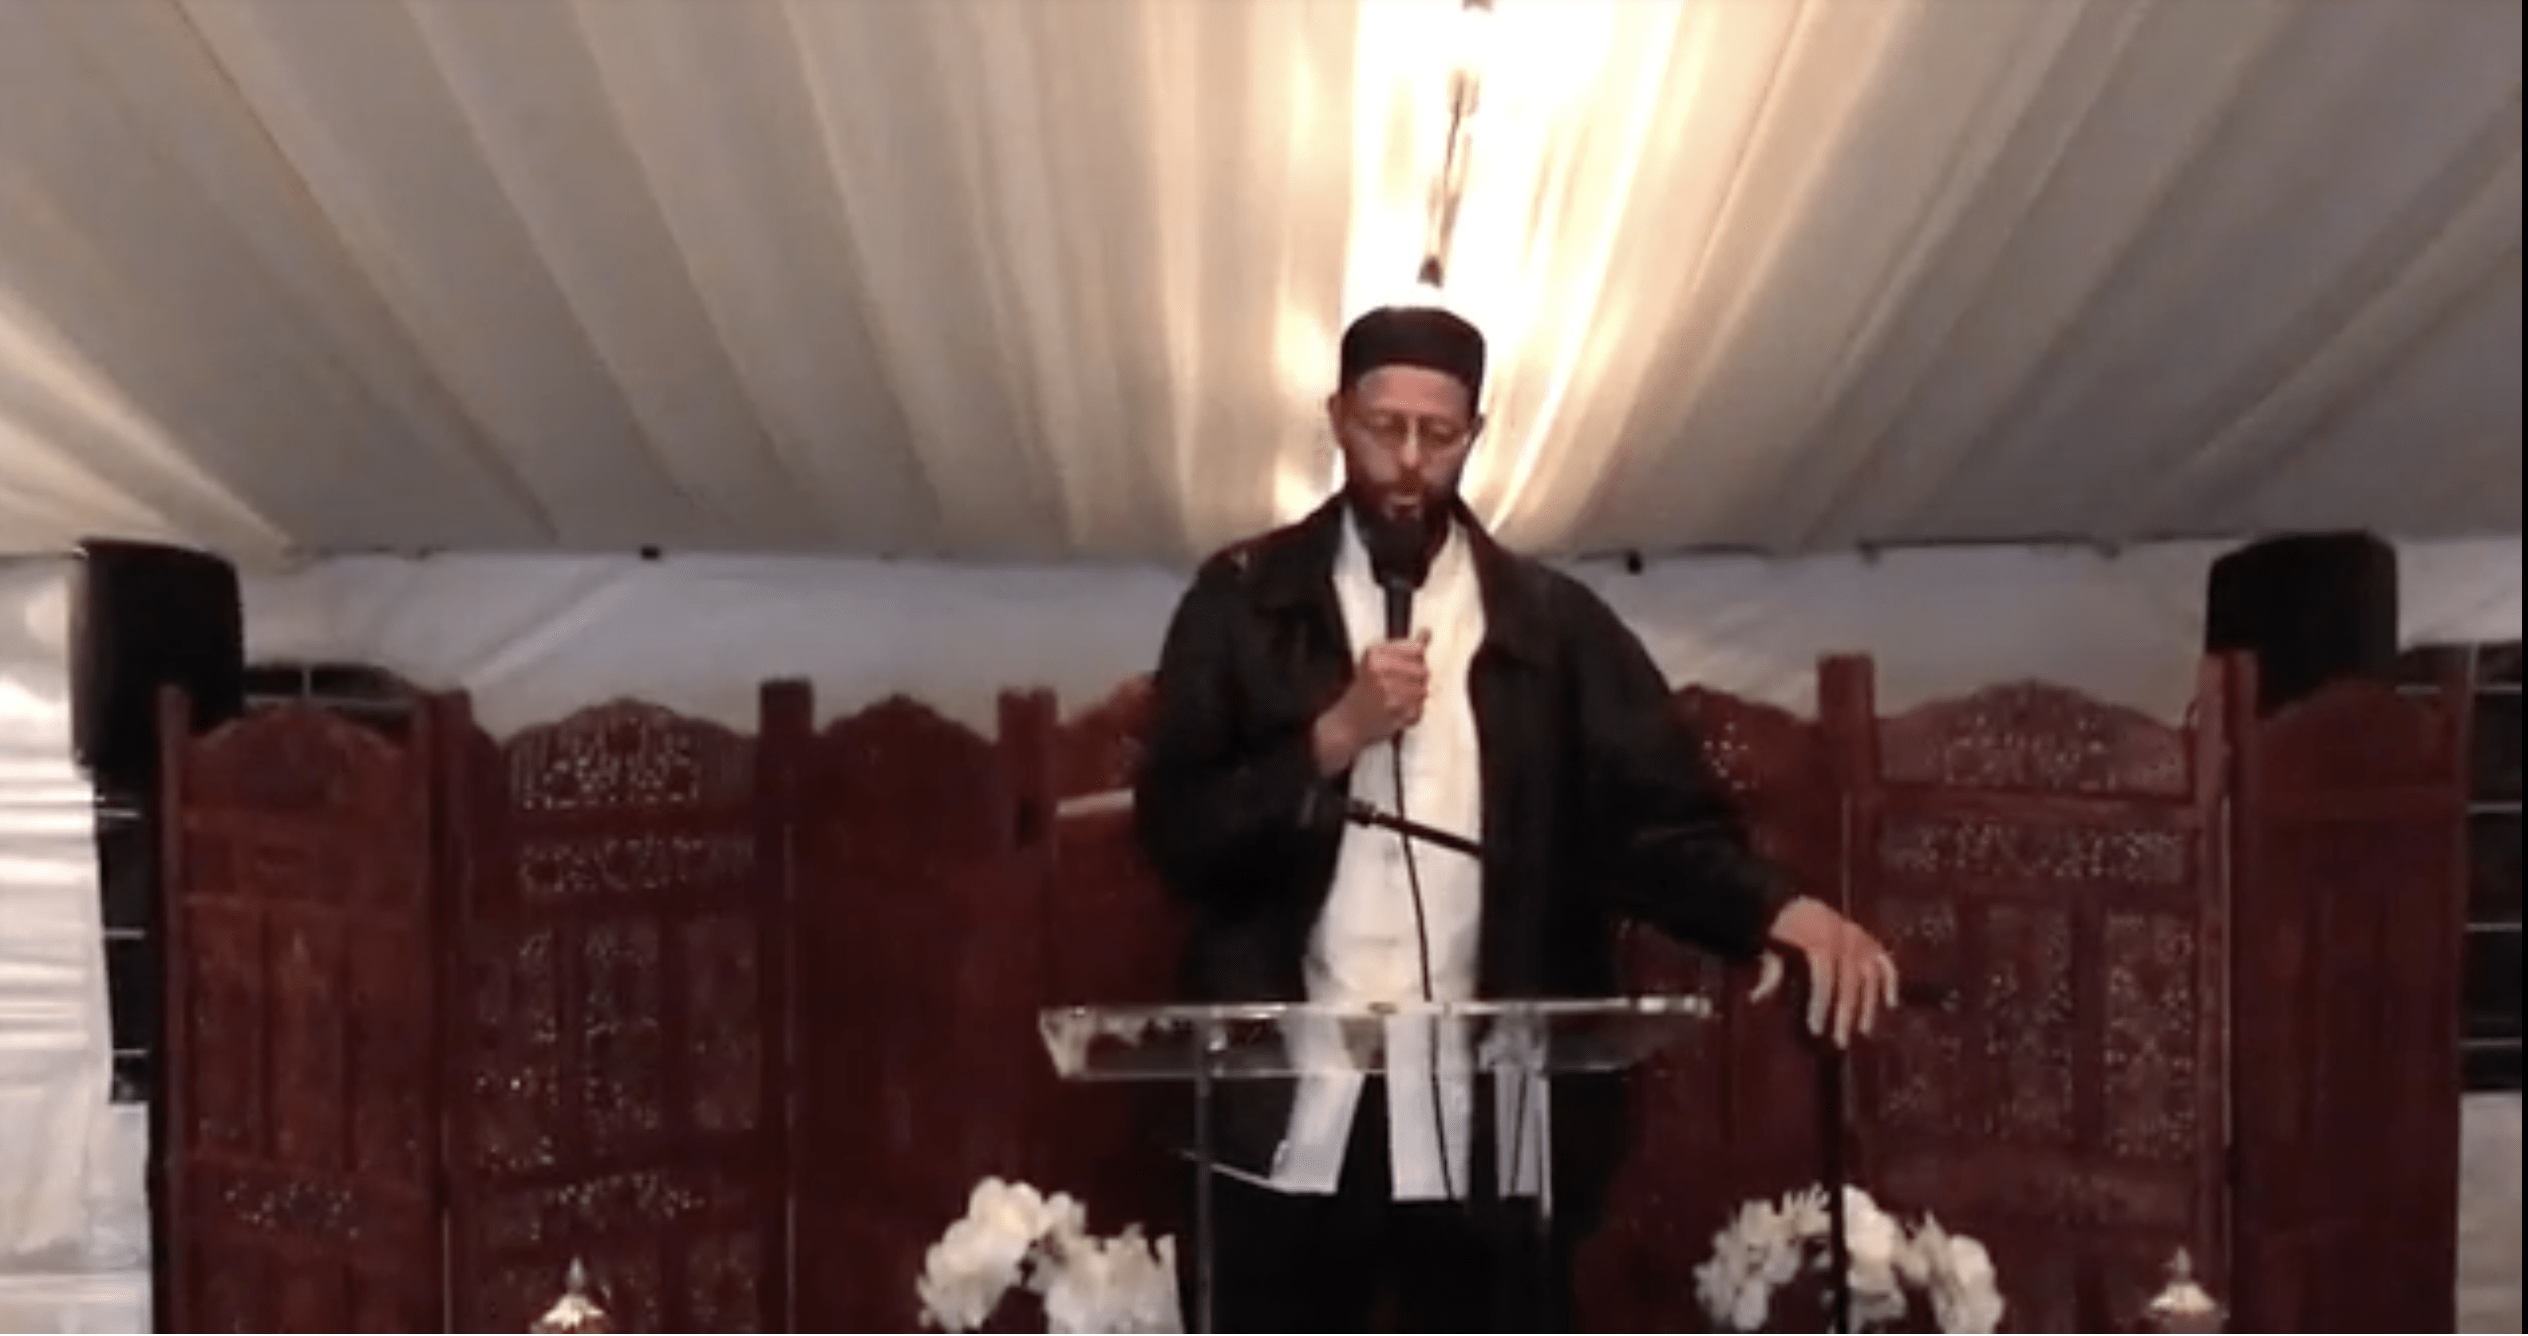 Zaid Shakir – Reviving the Sunnah of Compassion